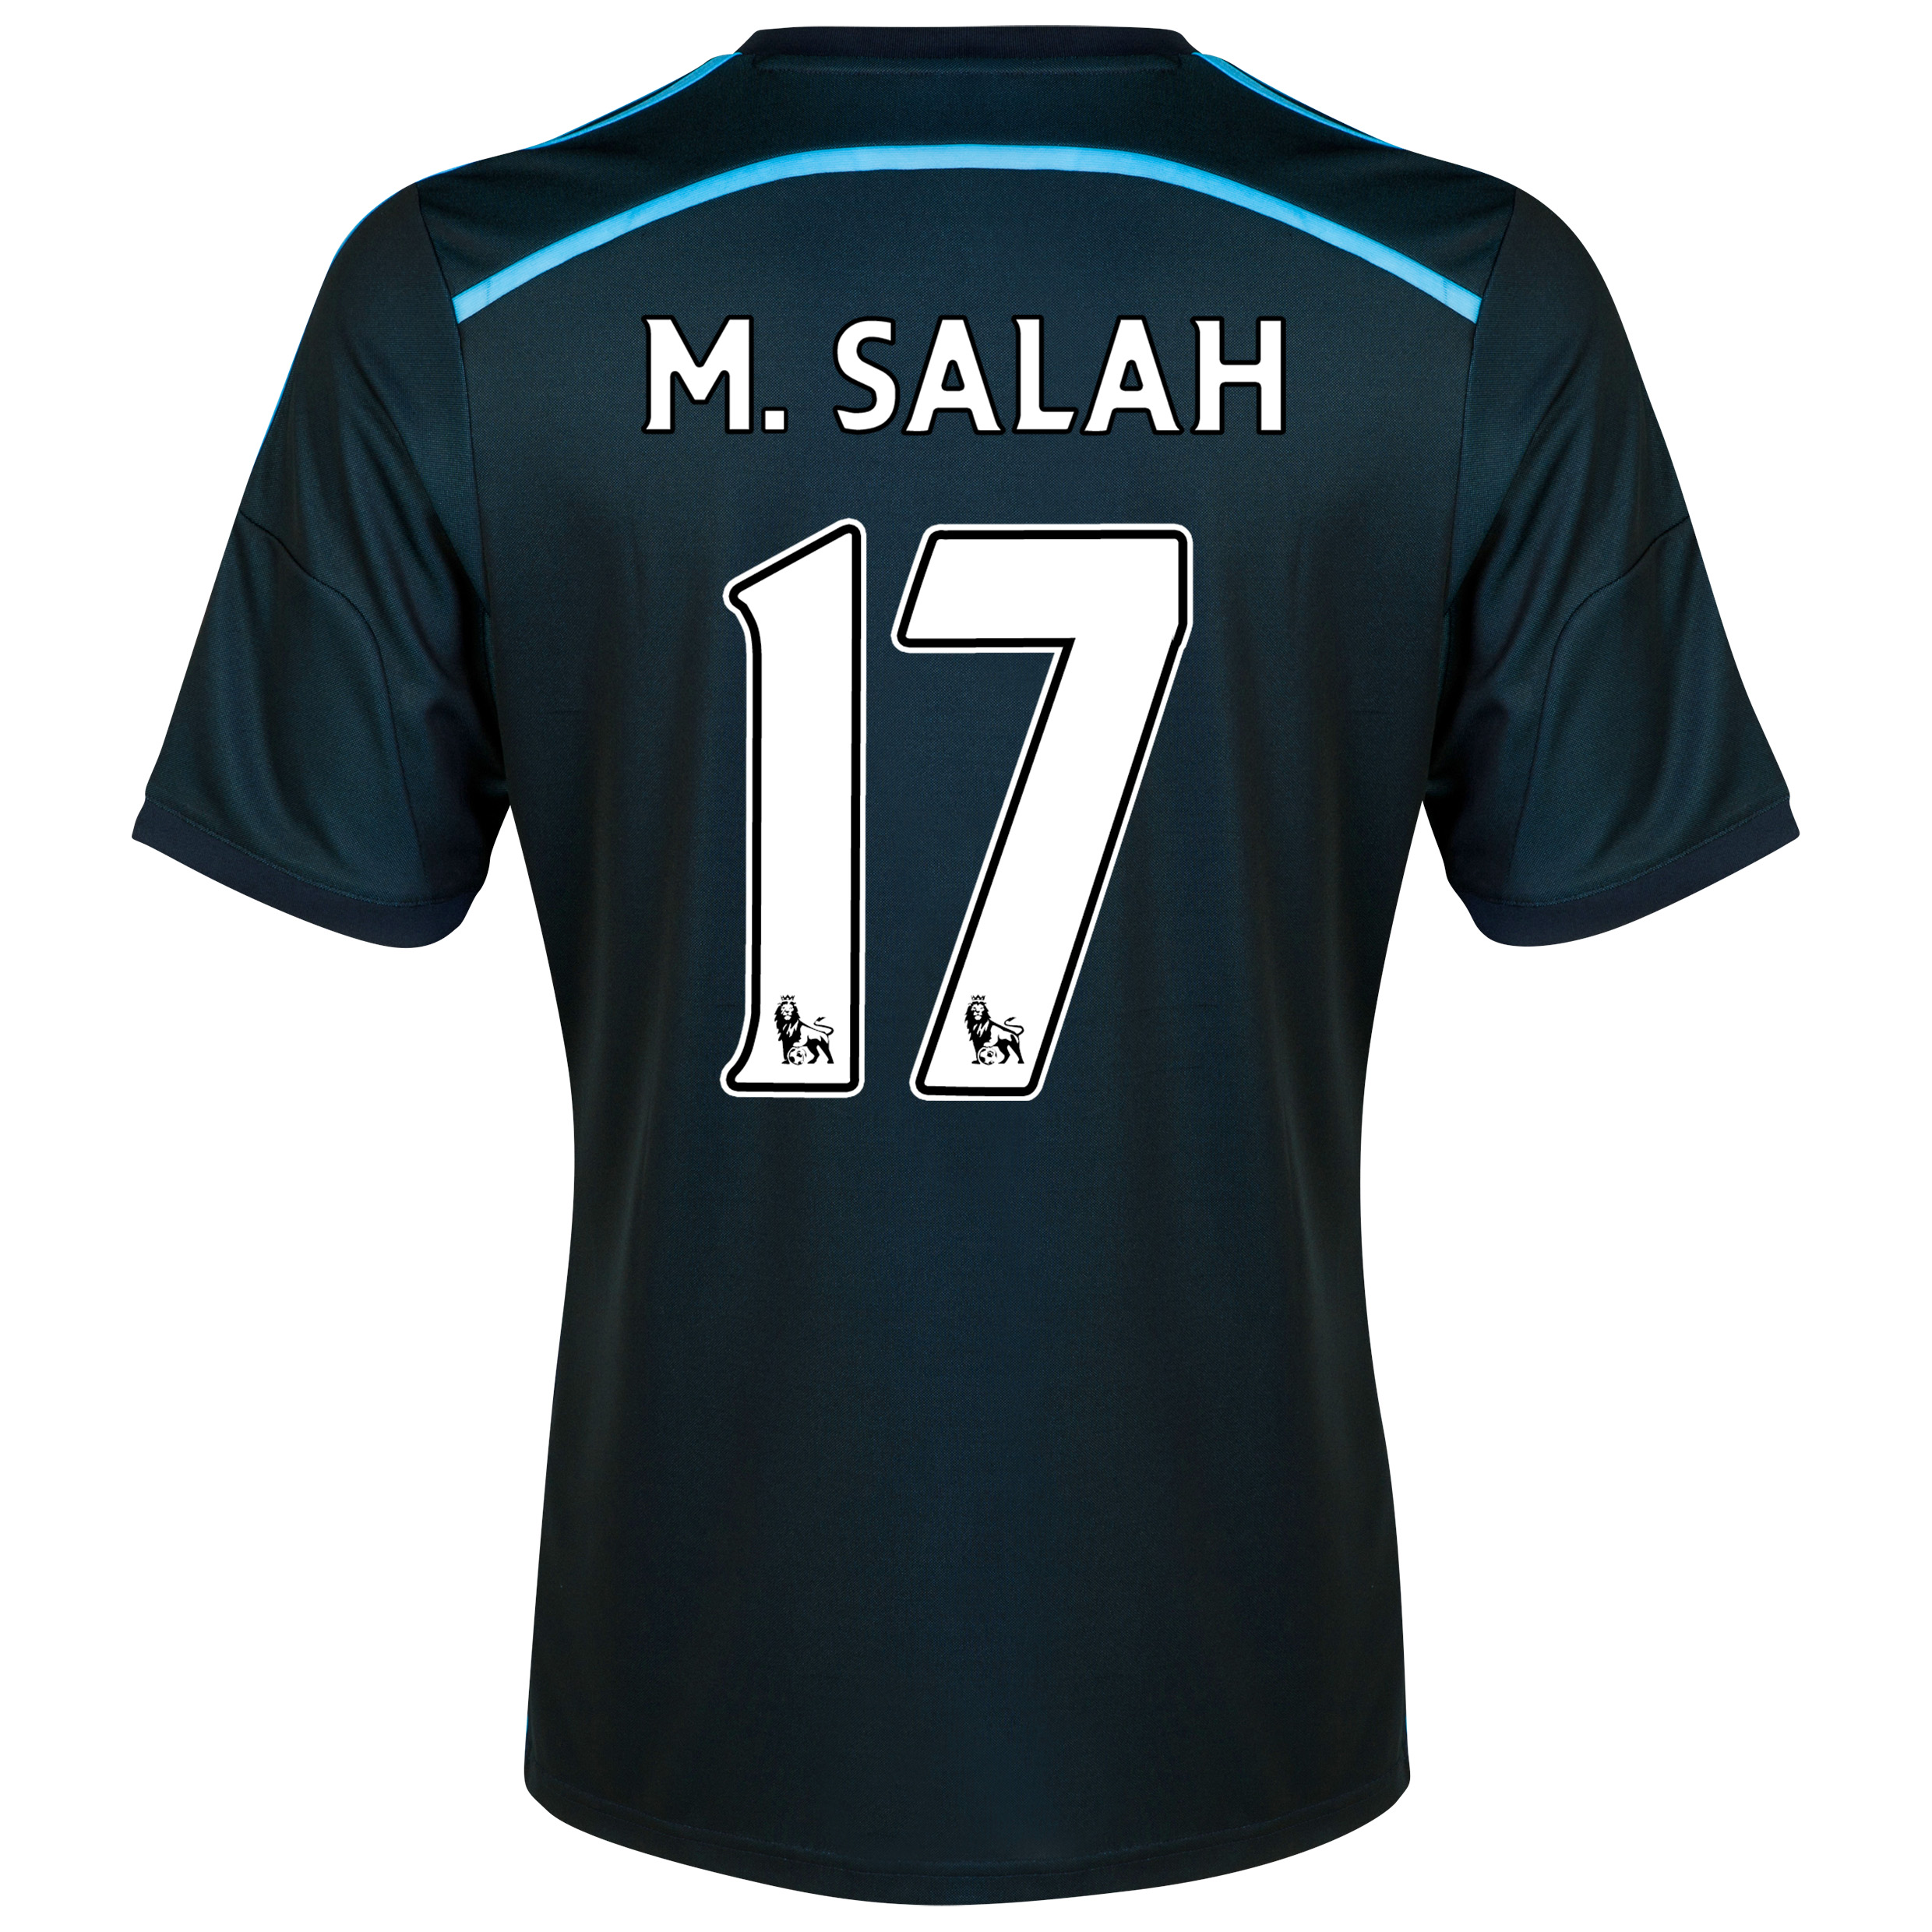 Chelsea Third Shirt 2014/15 with M. Salah 17 printing